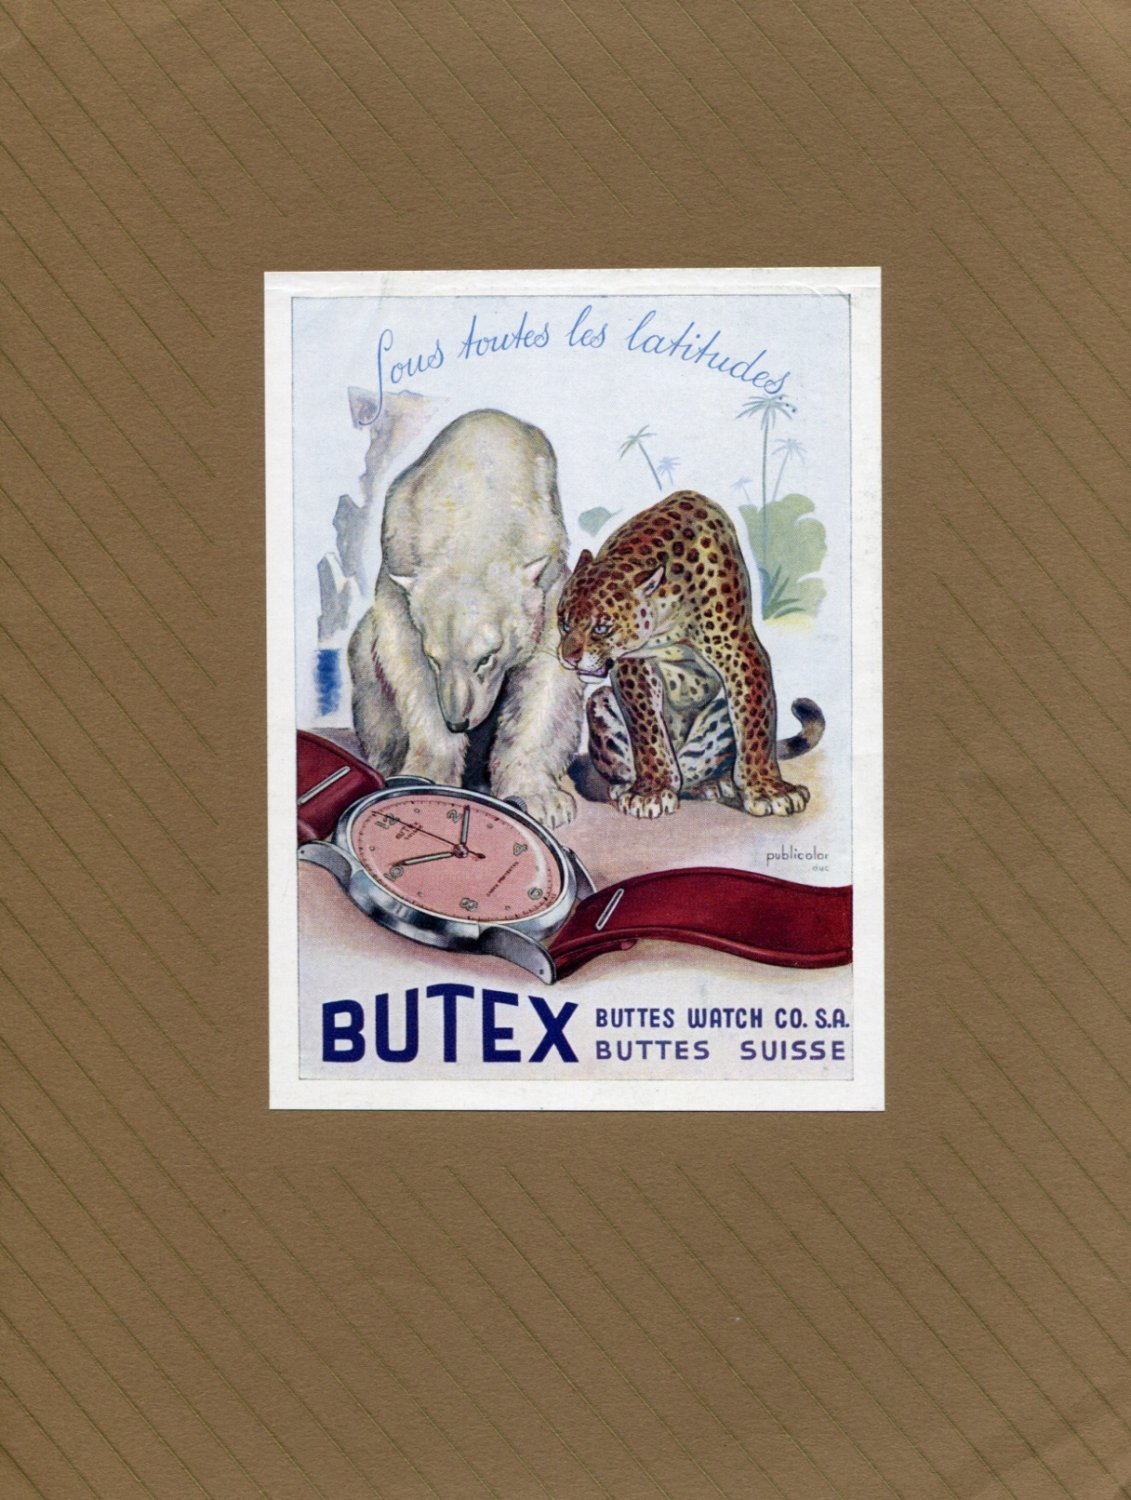 Vintage 1947 Butex Watch Company Buttes Watch Co SA Swiss Ad Advert Publicite Suisse Montres